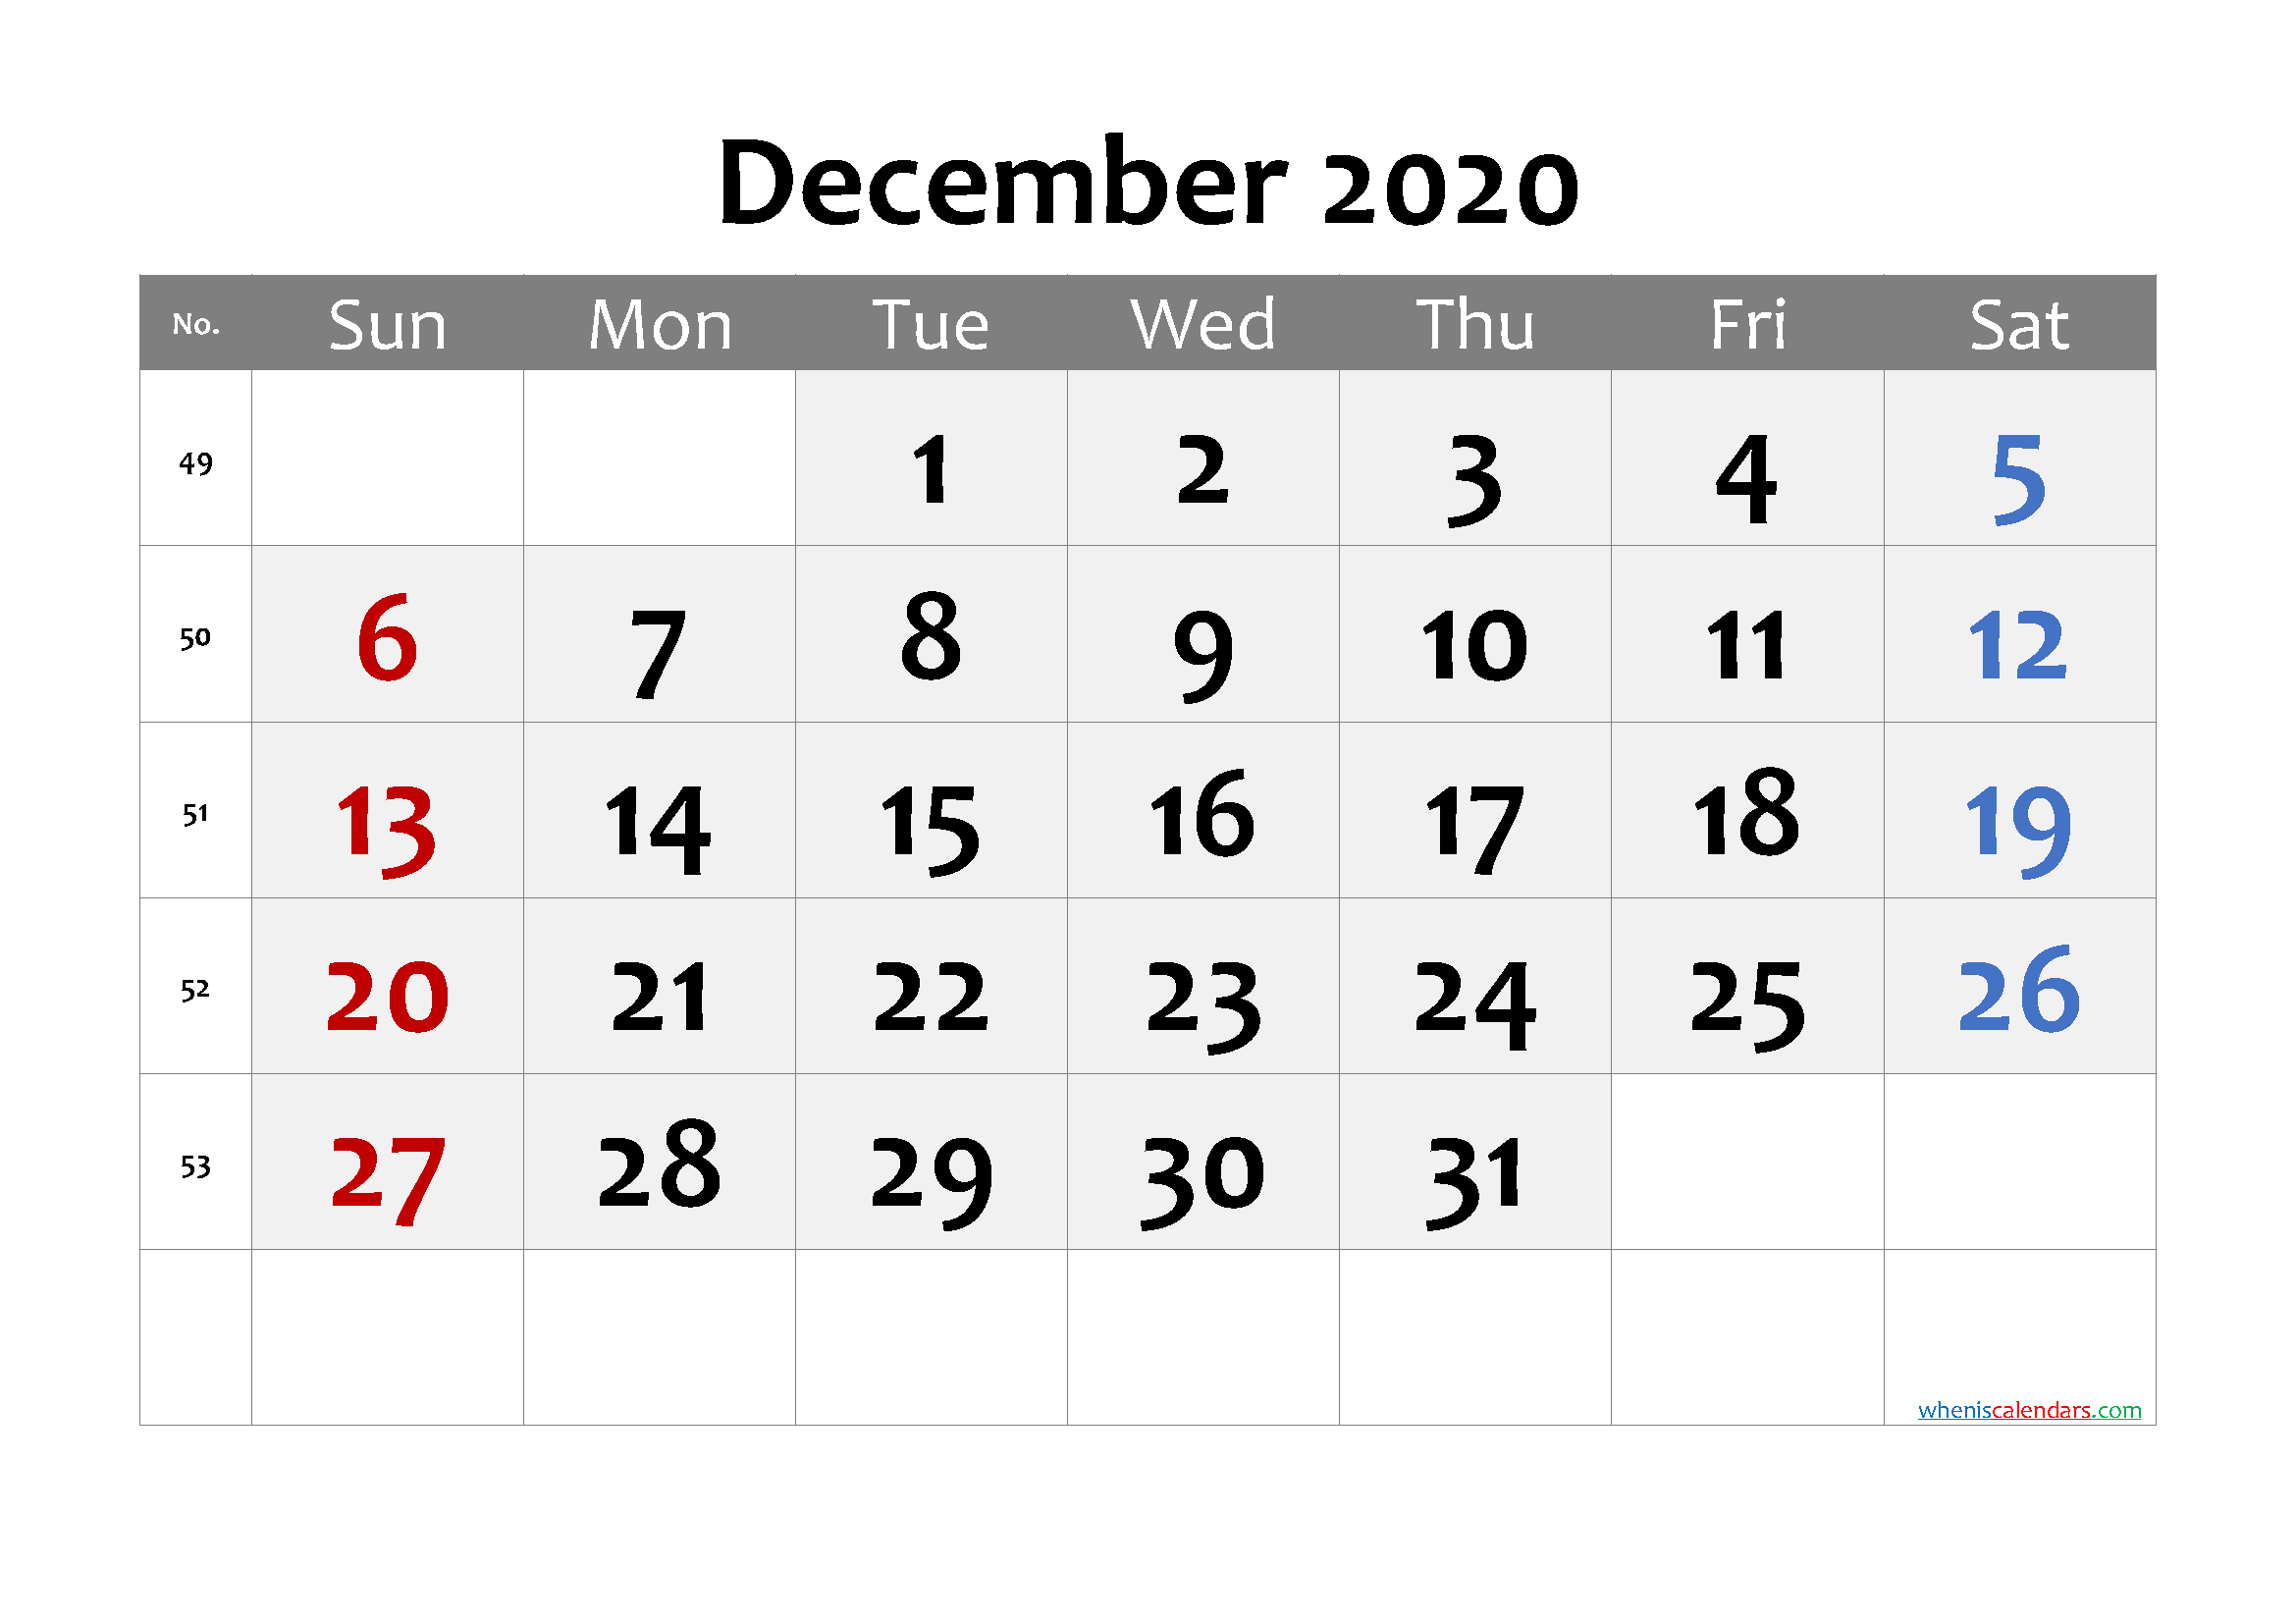 December 2020 Printable Calendar with Week Numbers